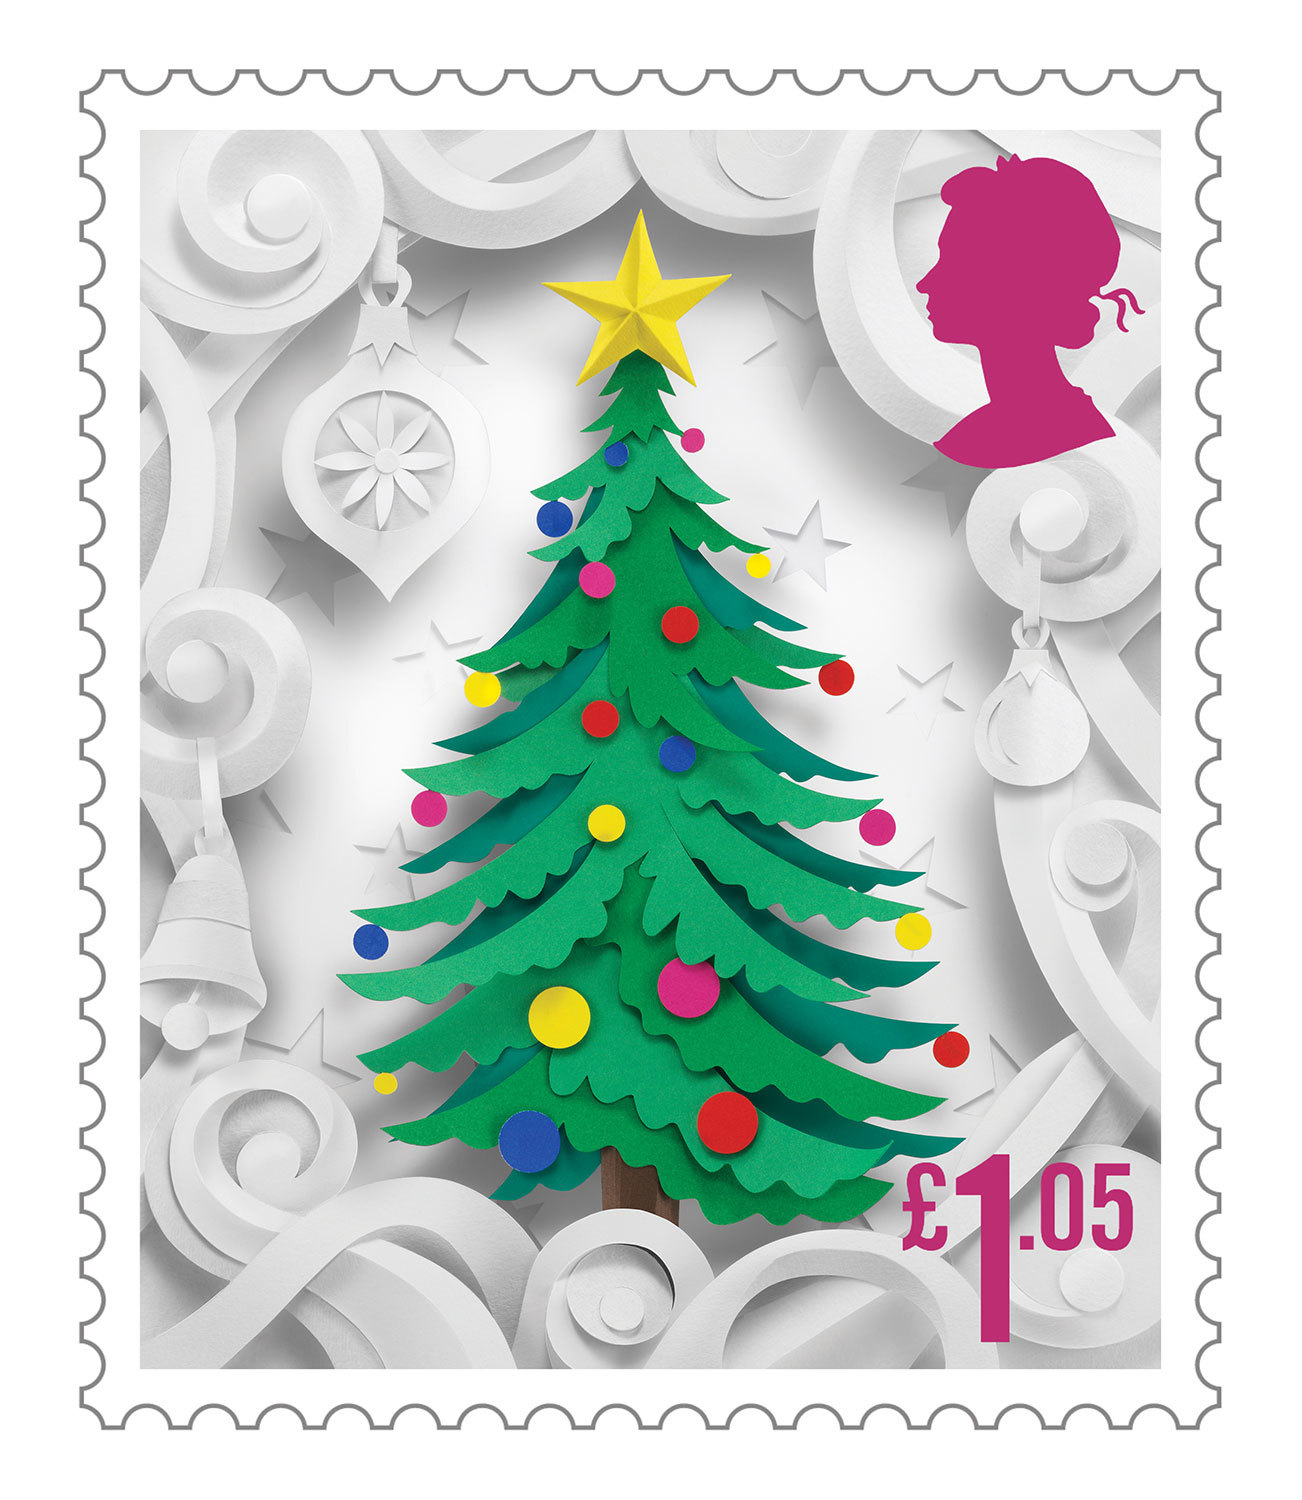 Delightful Christmas Stamp Collection Handcrafted in Paper by Helen Musselwhite - Christmas Tree